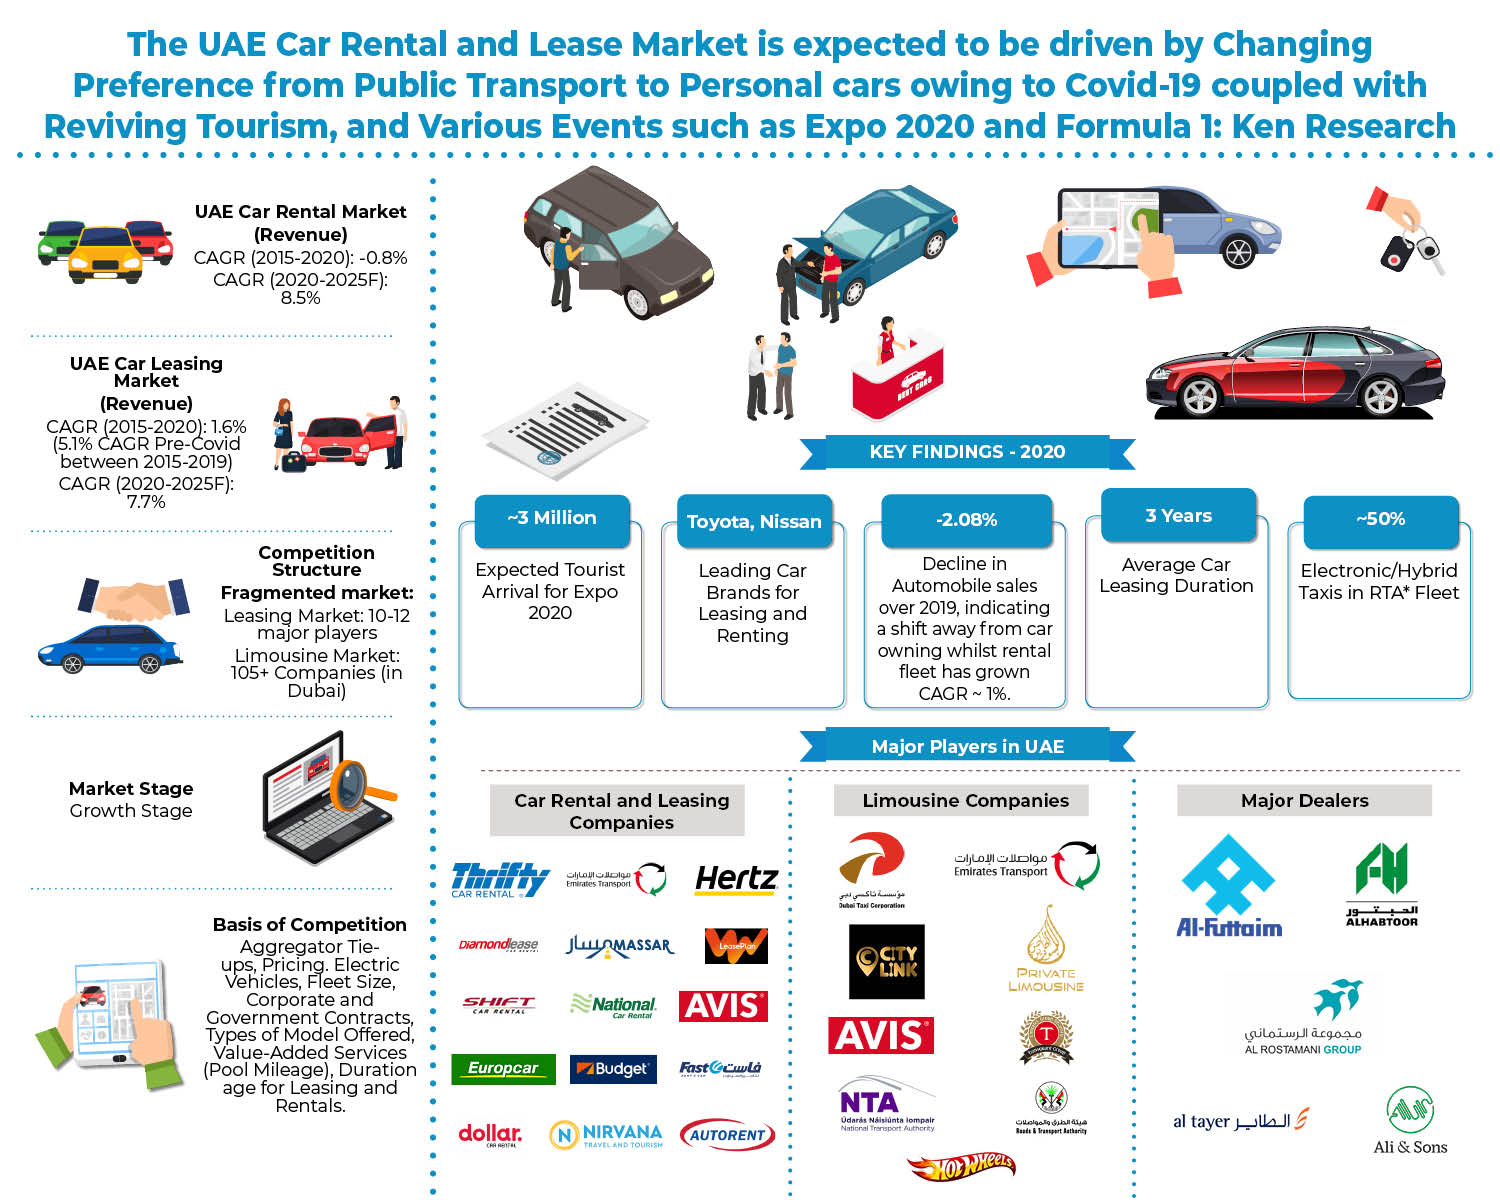 UAE-Car-Rental-Leasing-and-Limousine-Market_Infographic.jpg